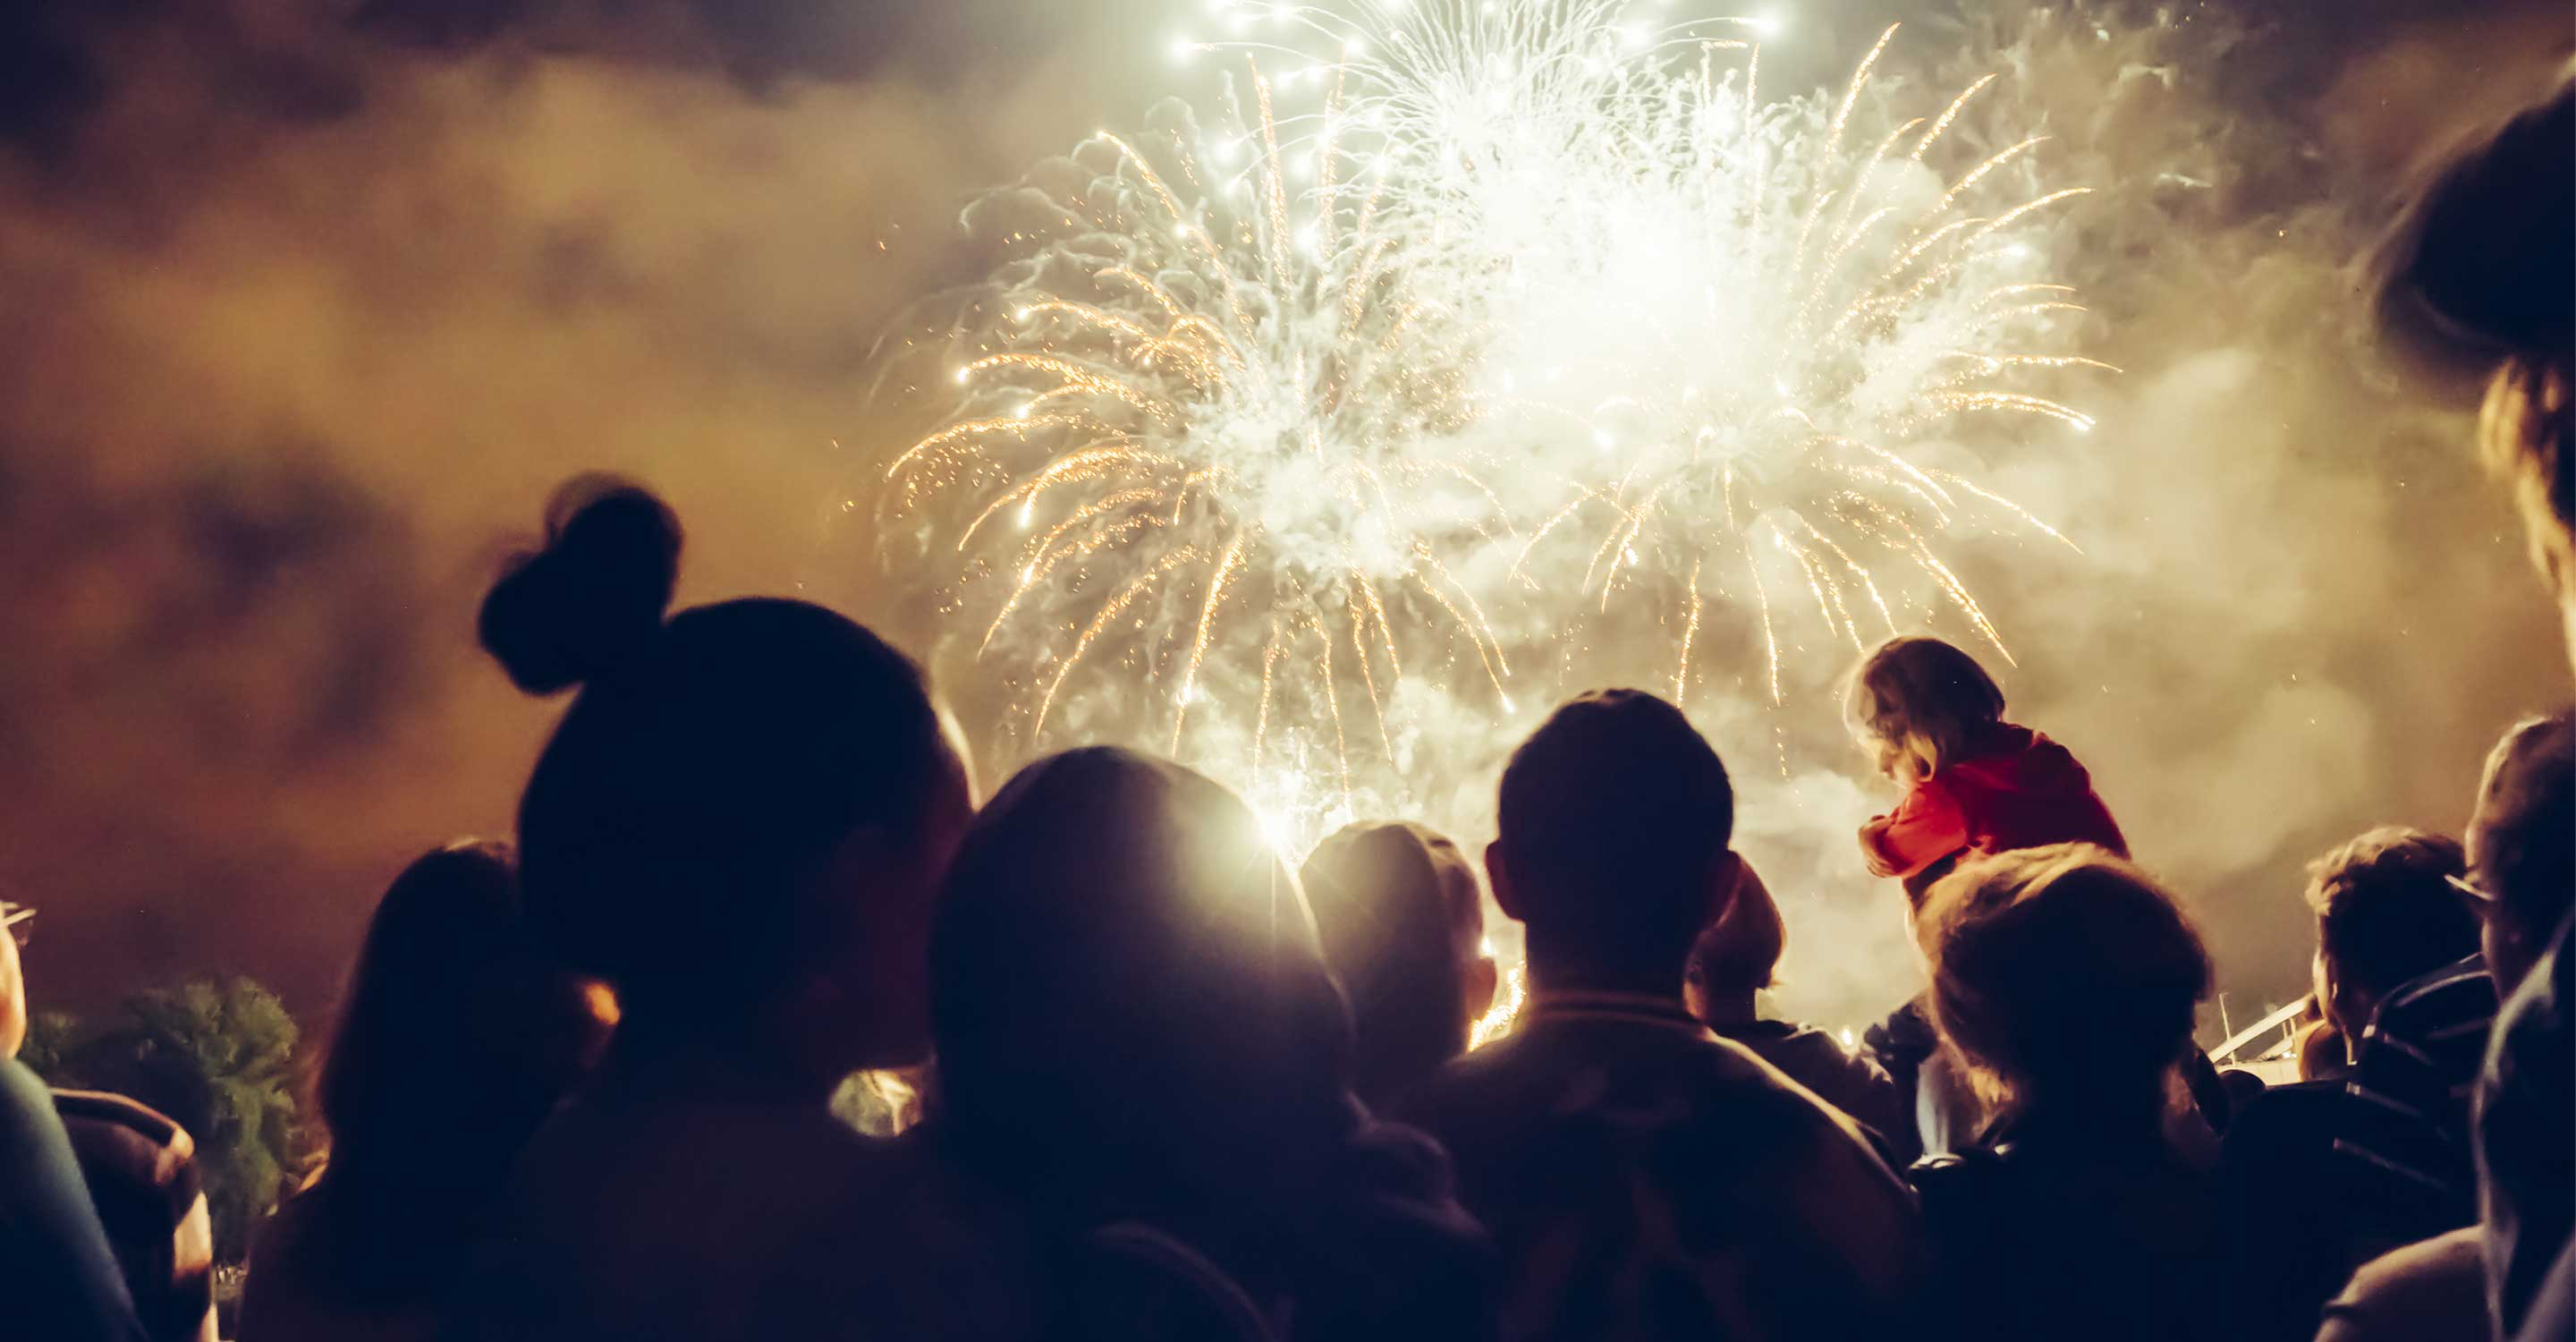 Are fireworks bad for air quality?